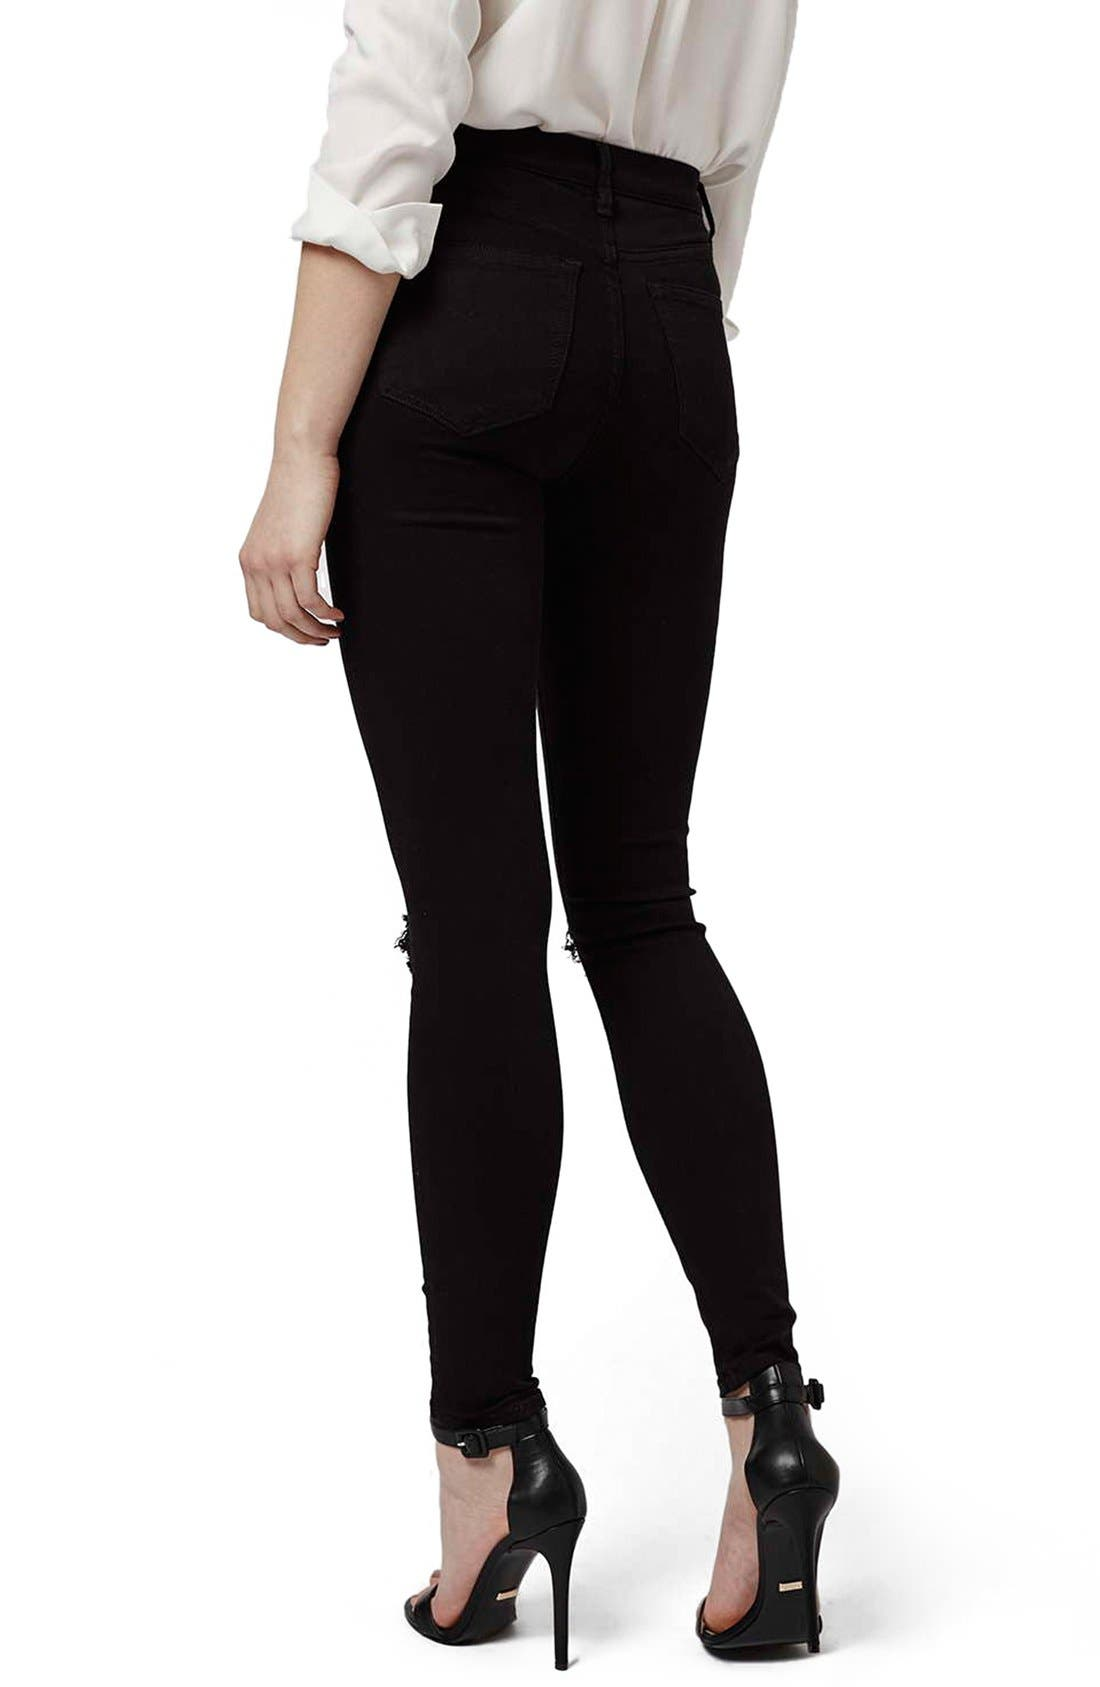 Ripped High Waist Ankle Skinny Jeans,                             Alternate thumbnail 10, color,                             001